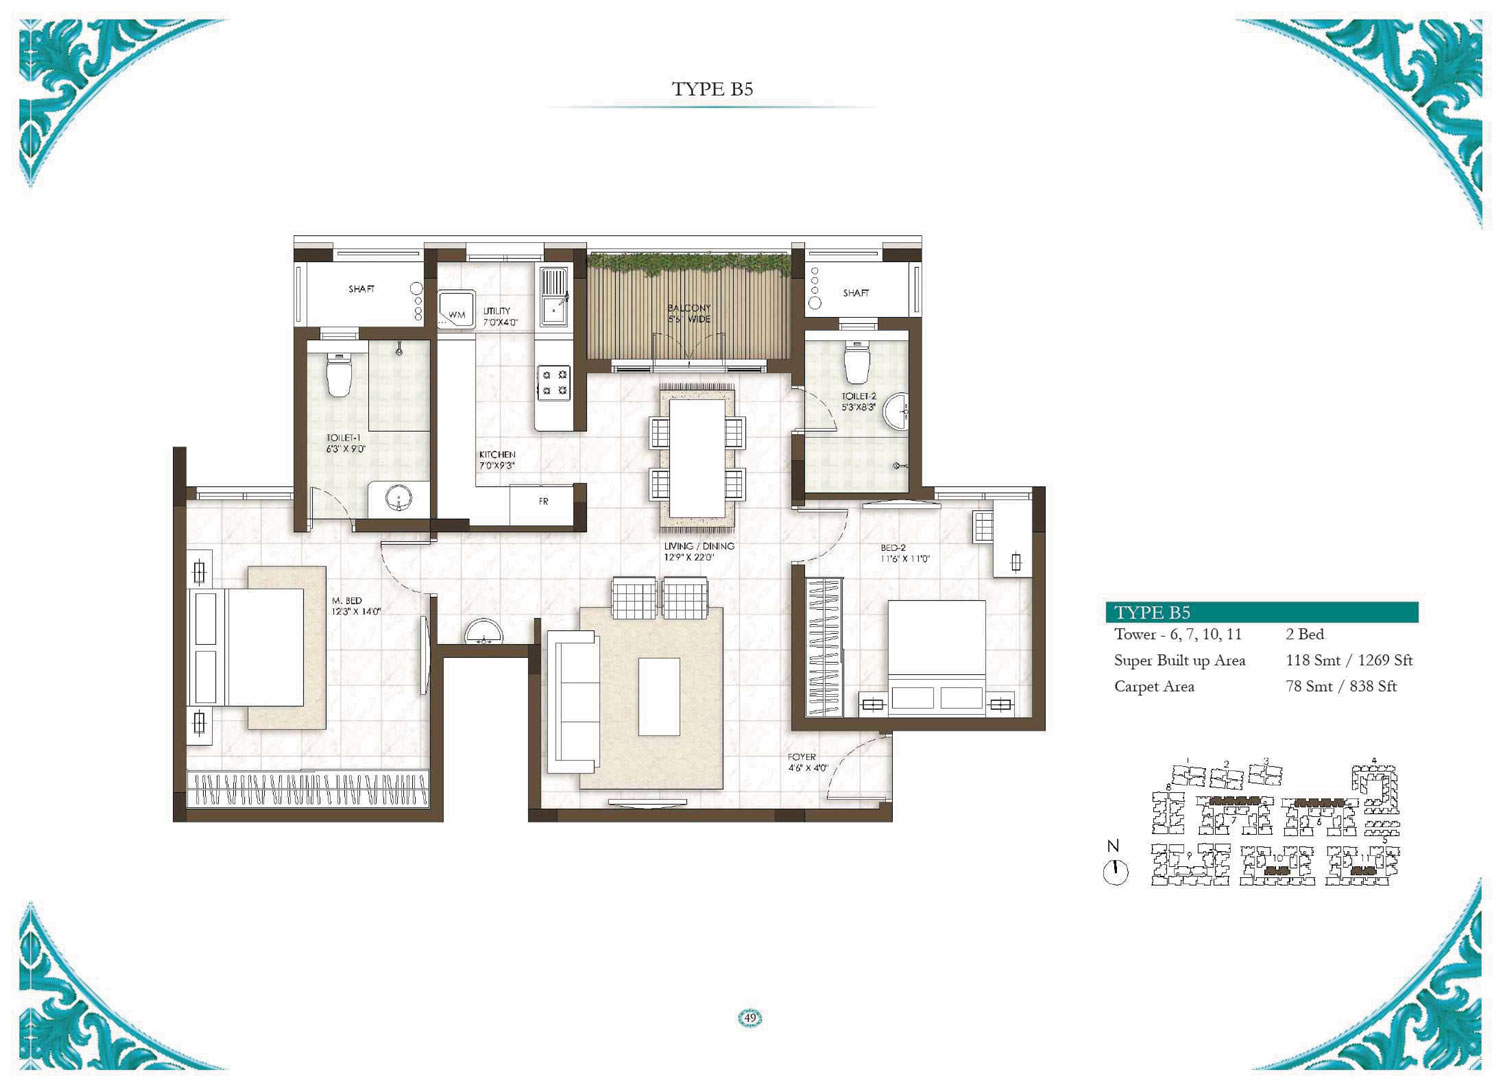 Type B5 - 1 Bed - 1269 Sq Ft